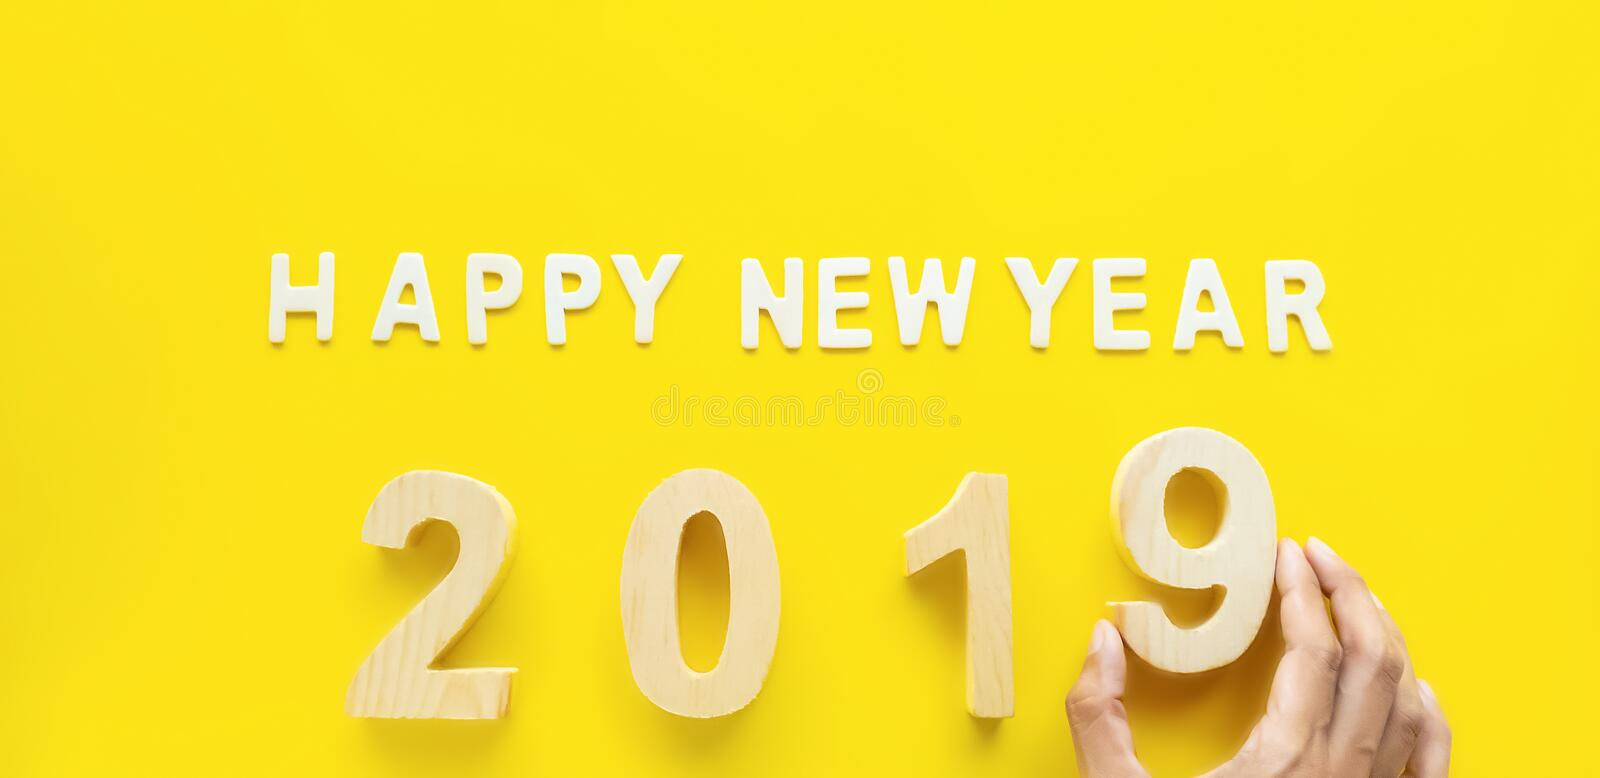 Symbol Celebration for 2019 year, wooden text Happy new Year 2019 on bright yellow paper background .Holiday Concept royalty free stock photography